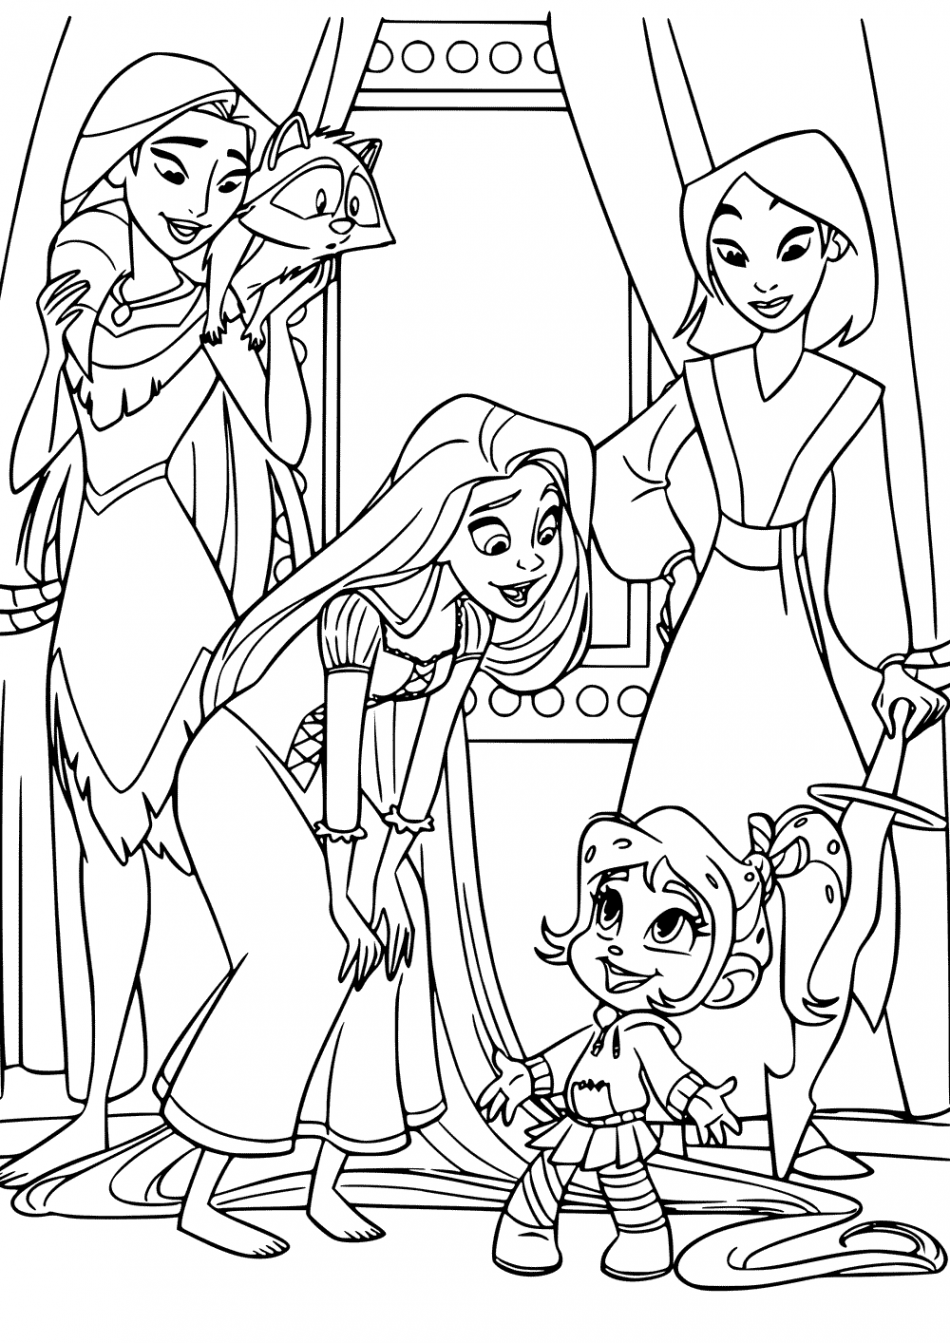 Vanellope And Disney Princess Coloring Pages Disney Princess Coloring Pages Disney Princess Colors Princess Coloring Pages